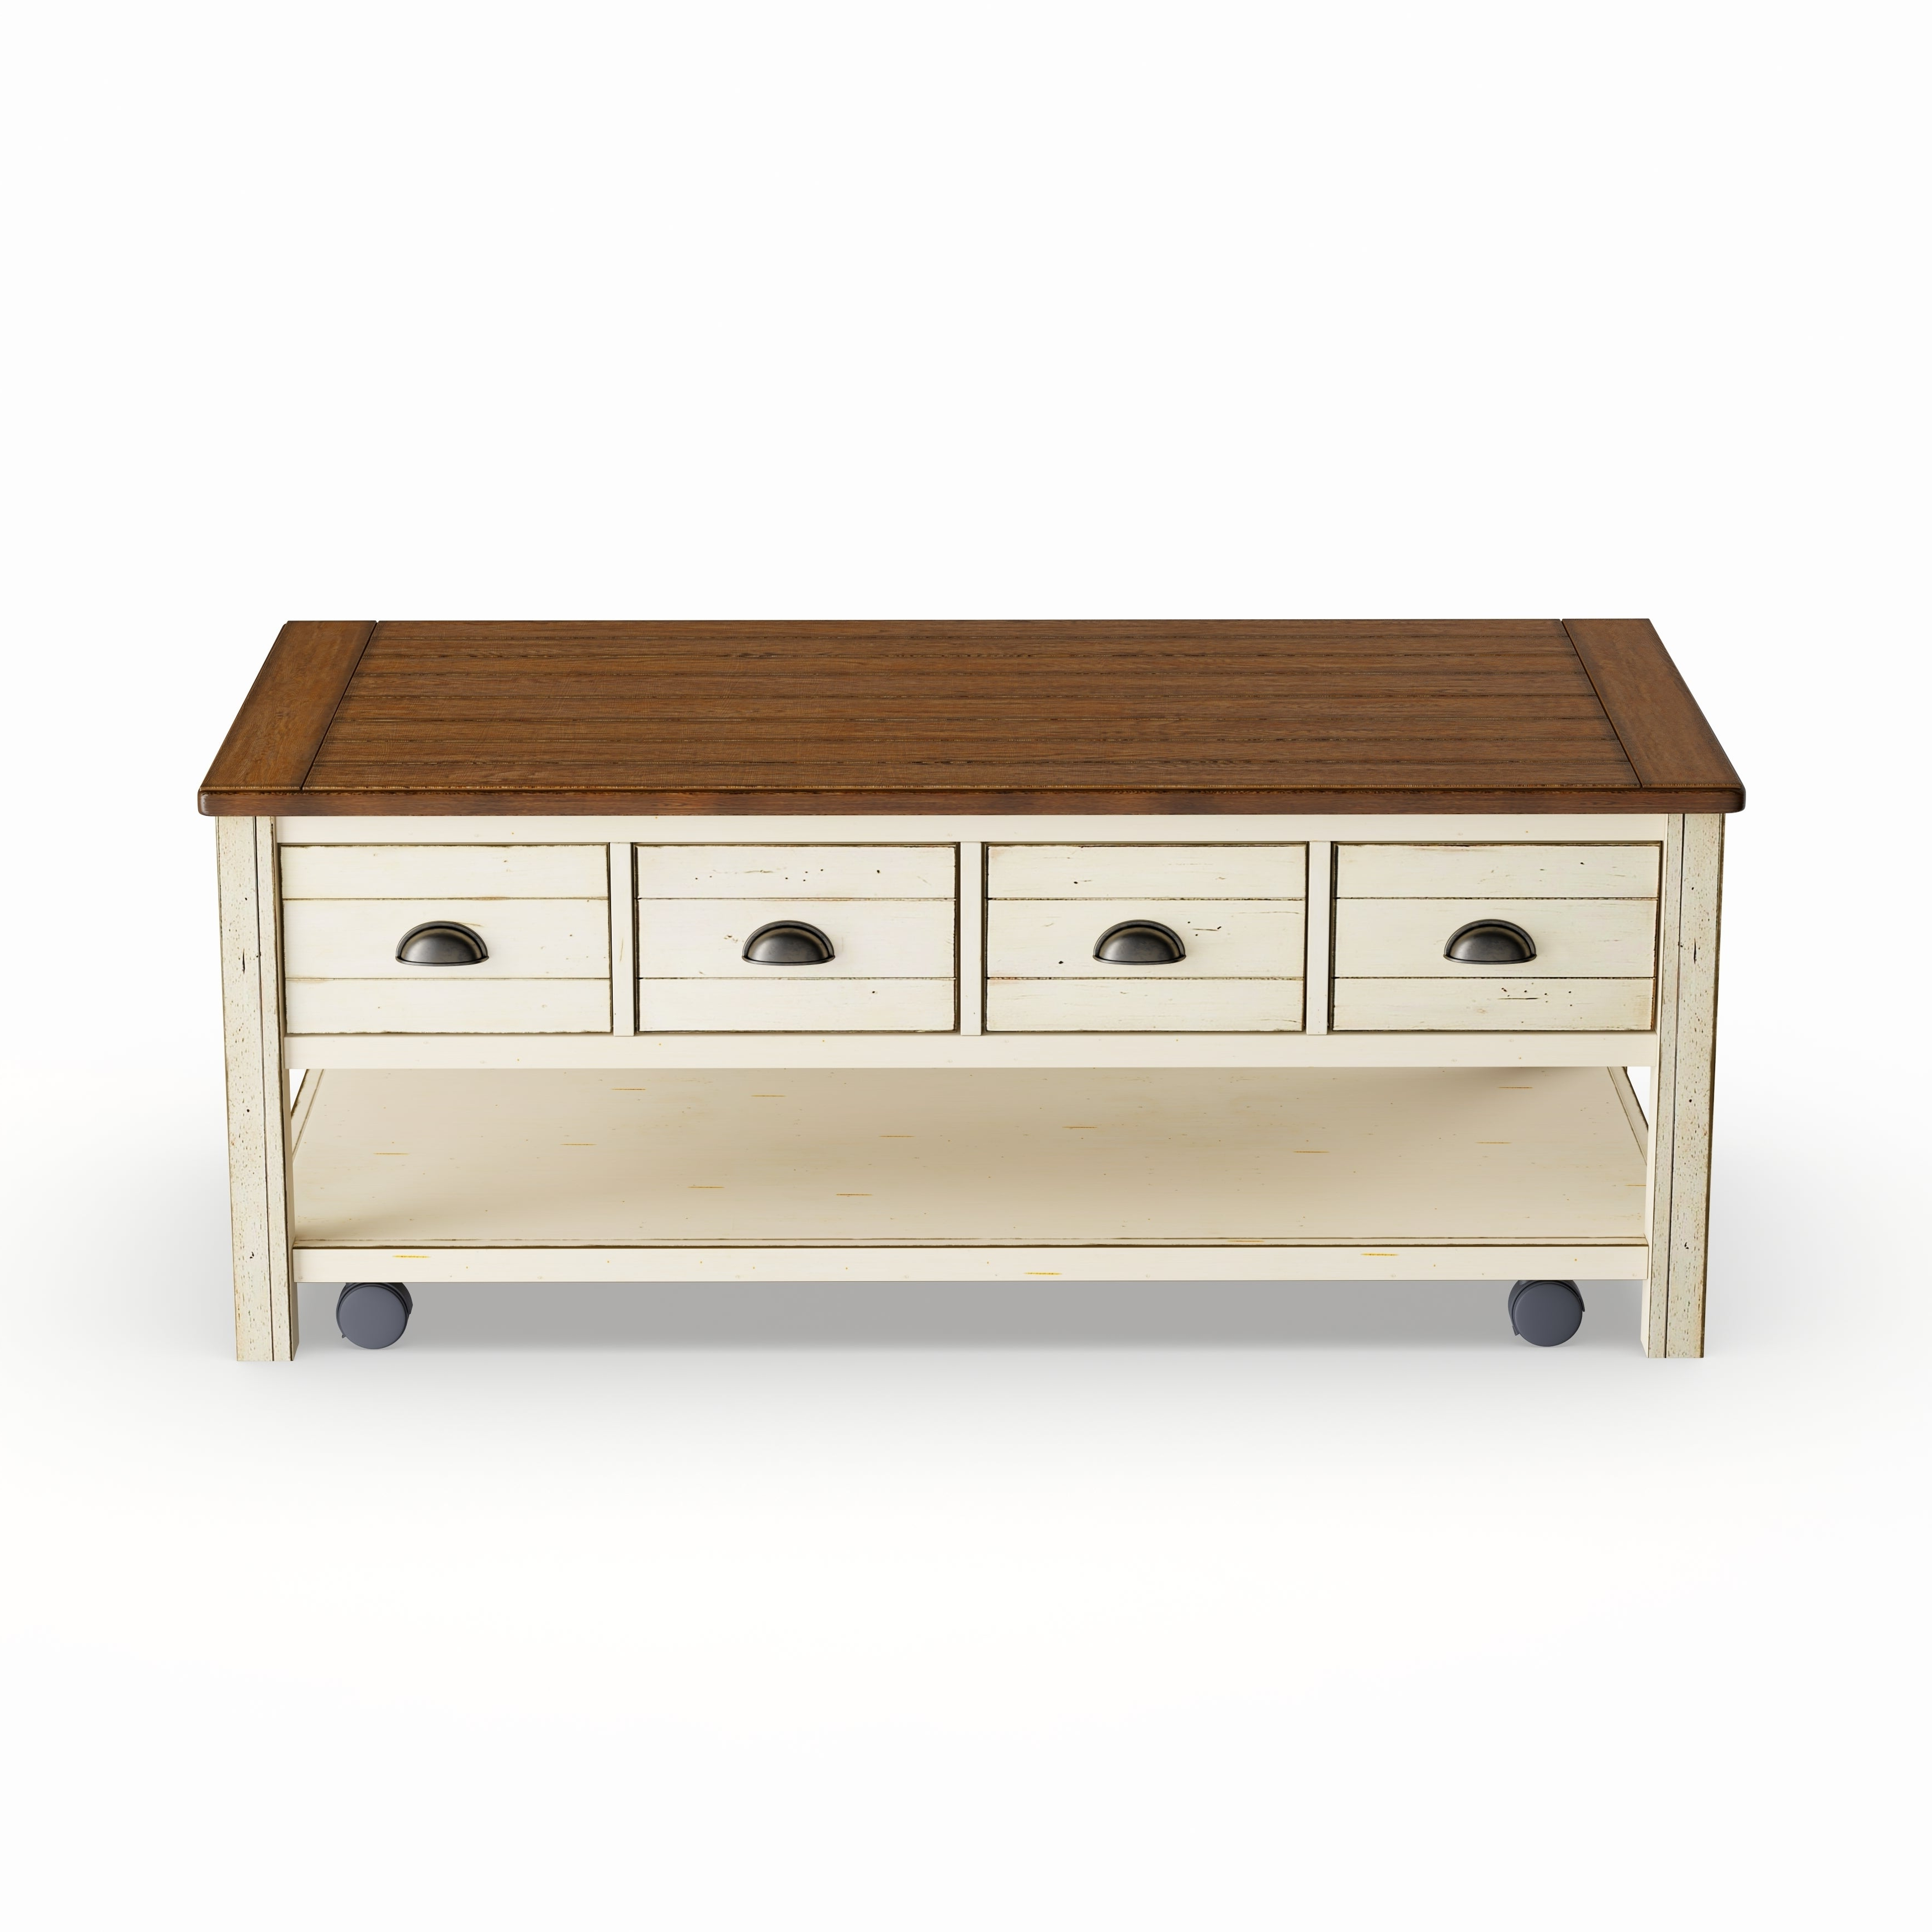 2020 Copper Grove Bowron Dark Cherry Coffee Tables In Copper Grove Torngatalabaster Storage Coffee Table With Casters (View 11 of 20)